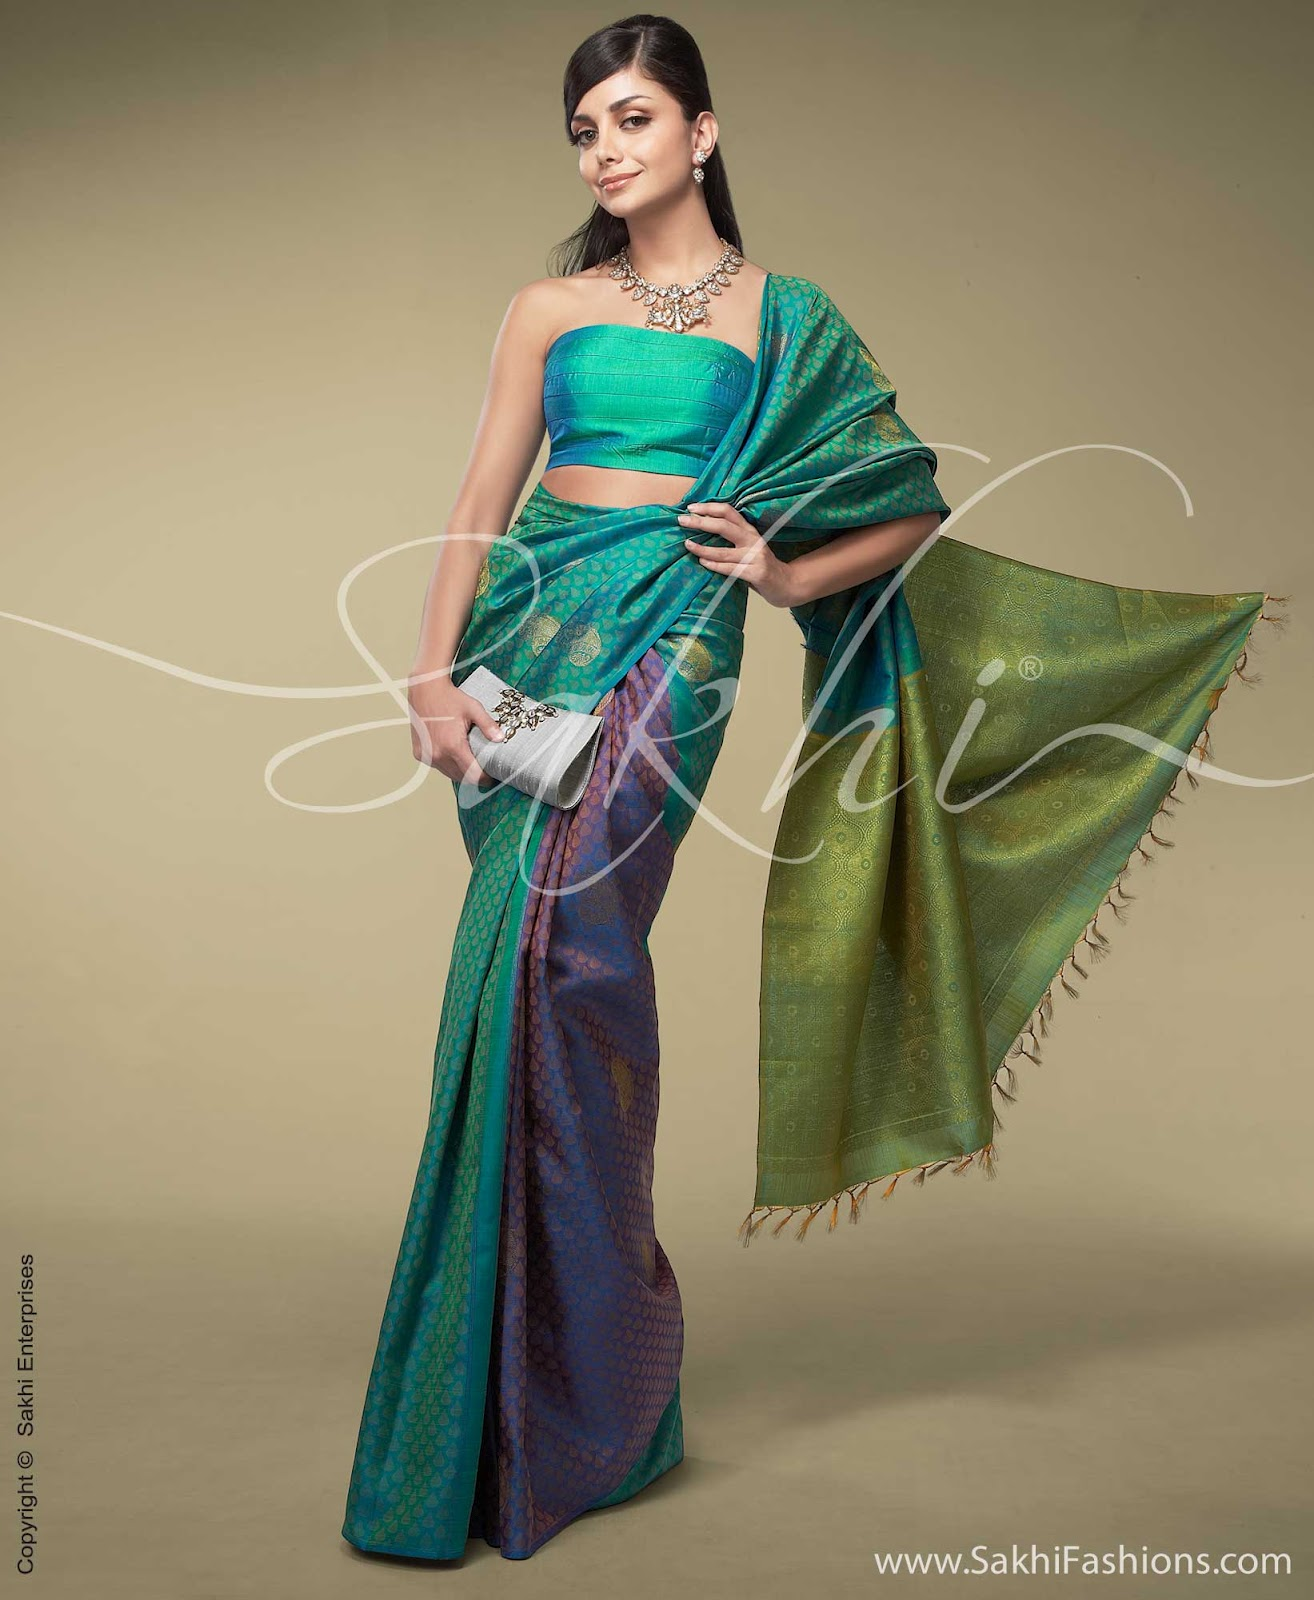 Fancy Lights Shops In Hyderabad: Indian Jewellery And Clothing: Designer Sarees From Sakhi